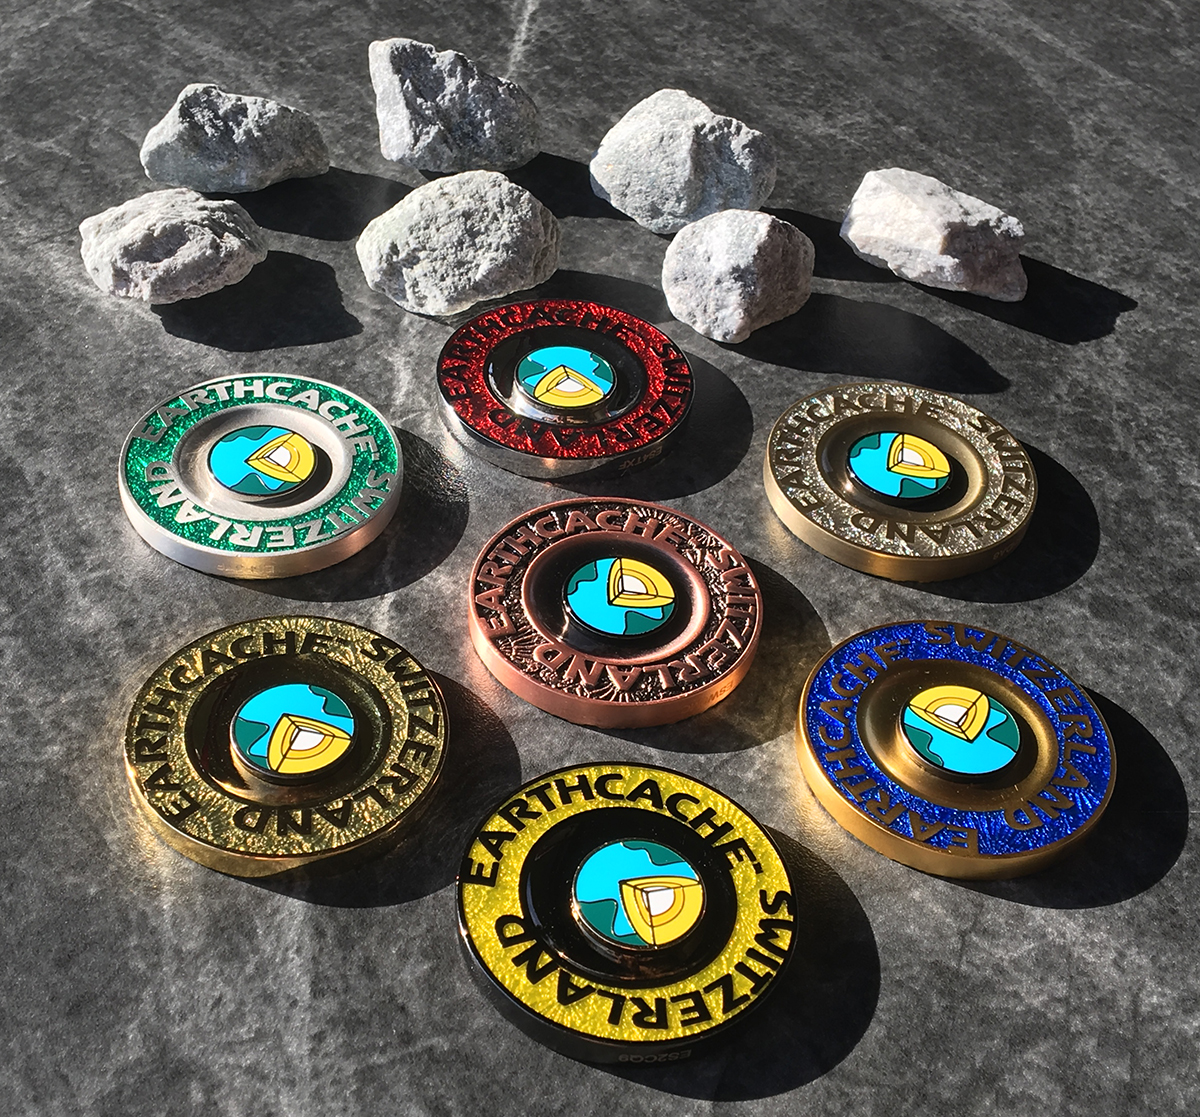 earthcache switzerland geocoins, set of 7